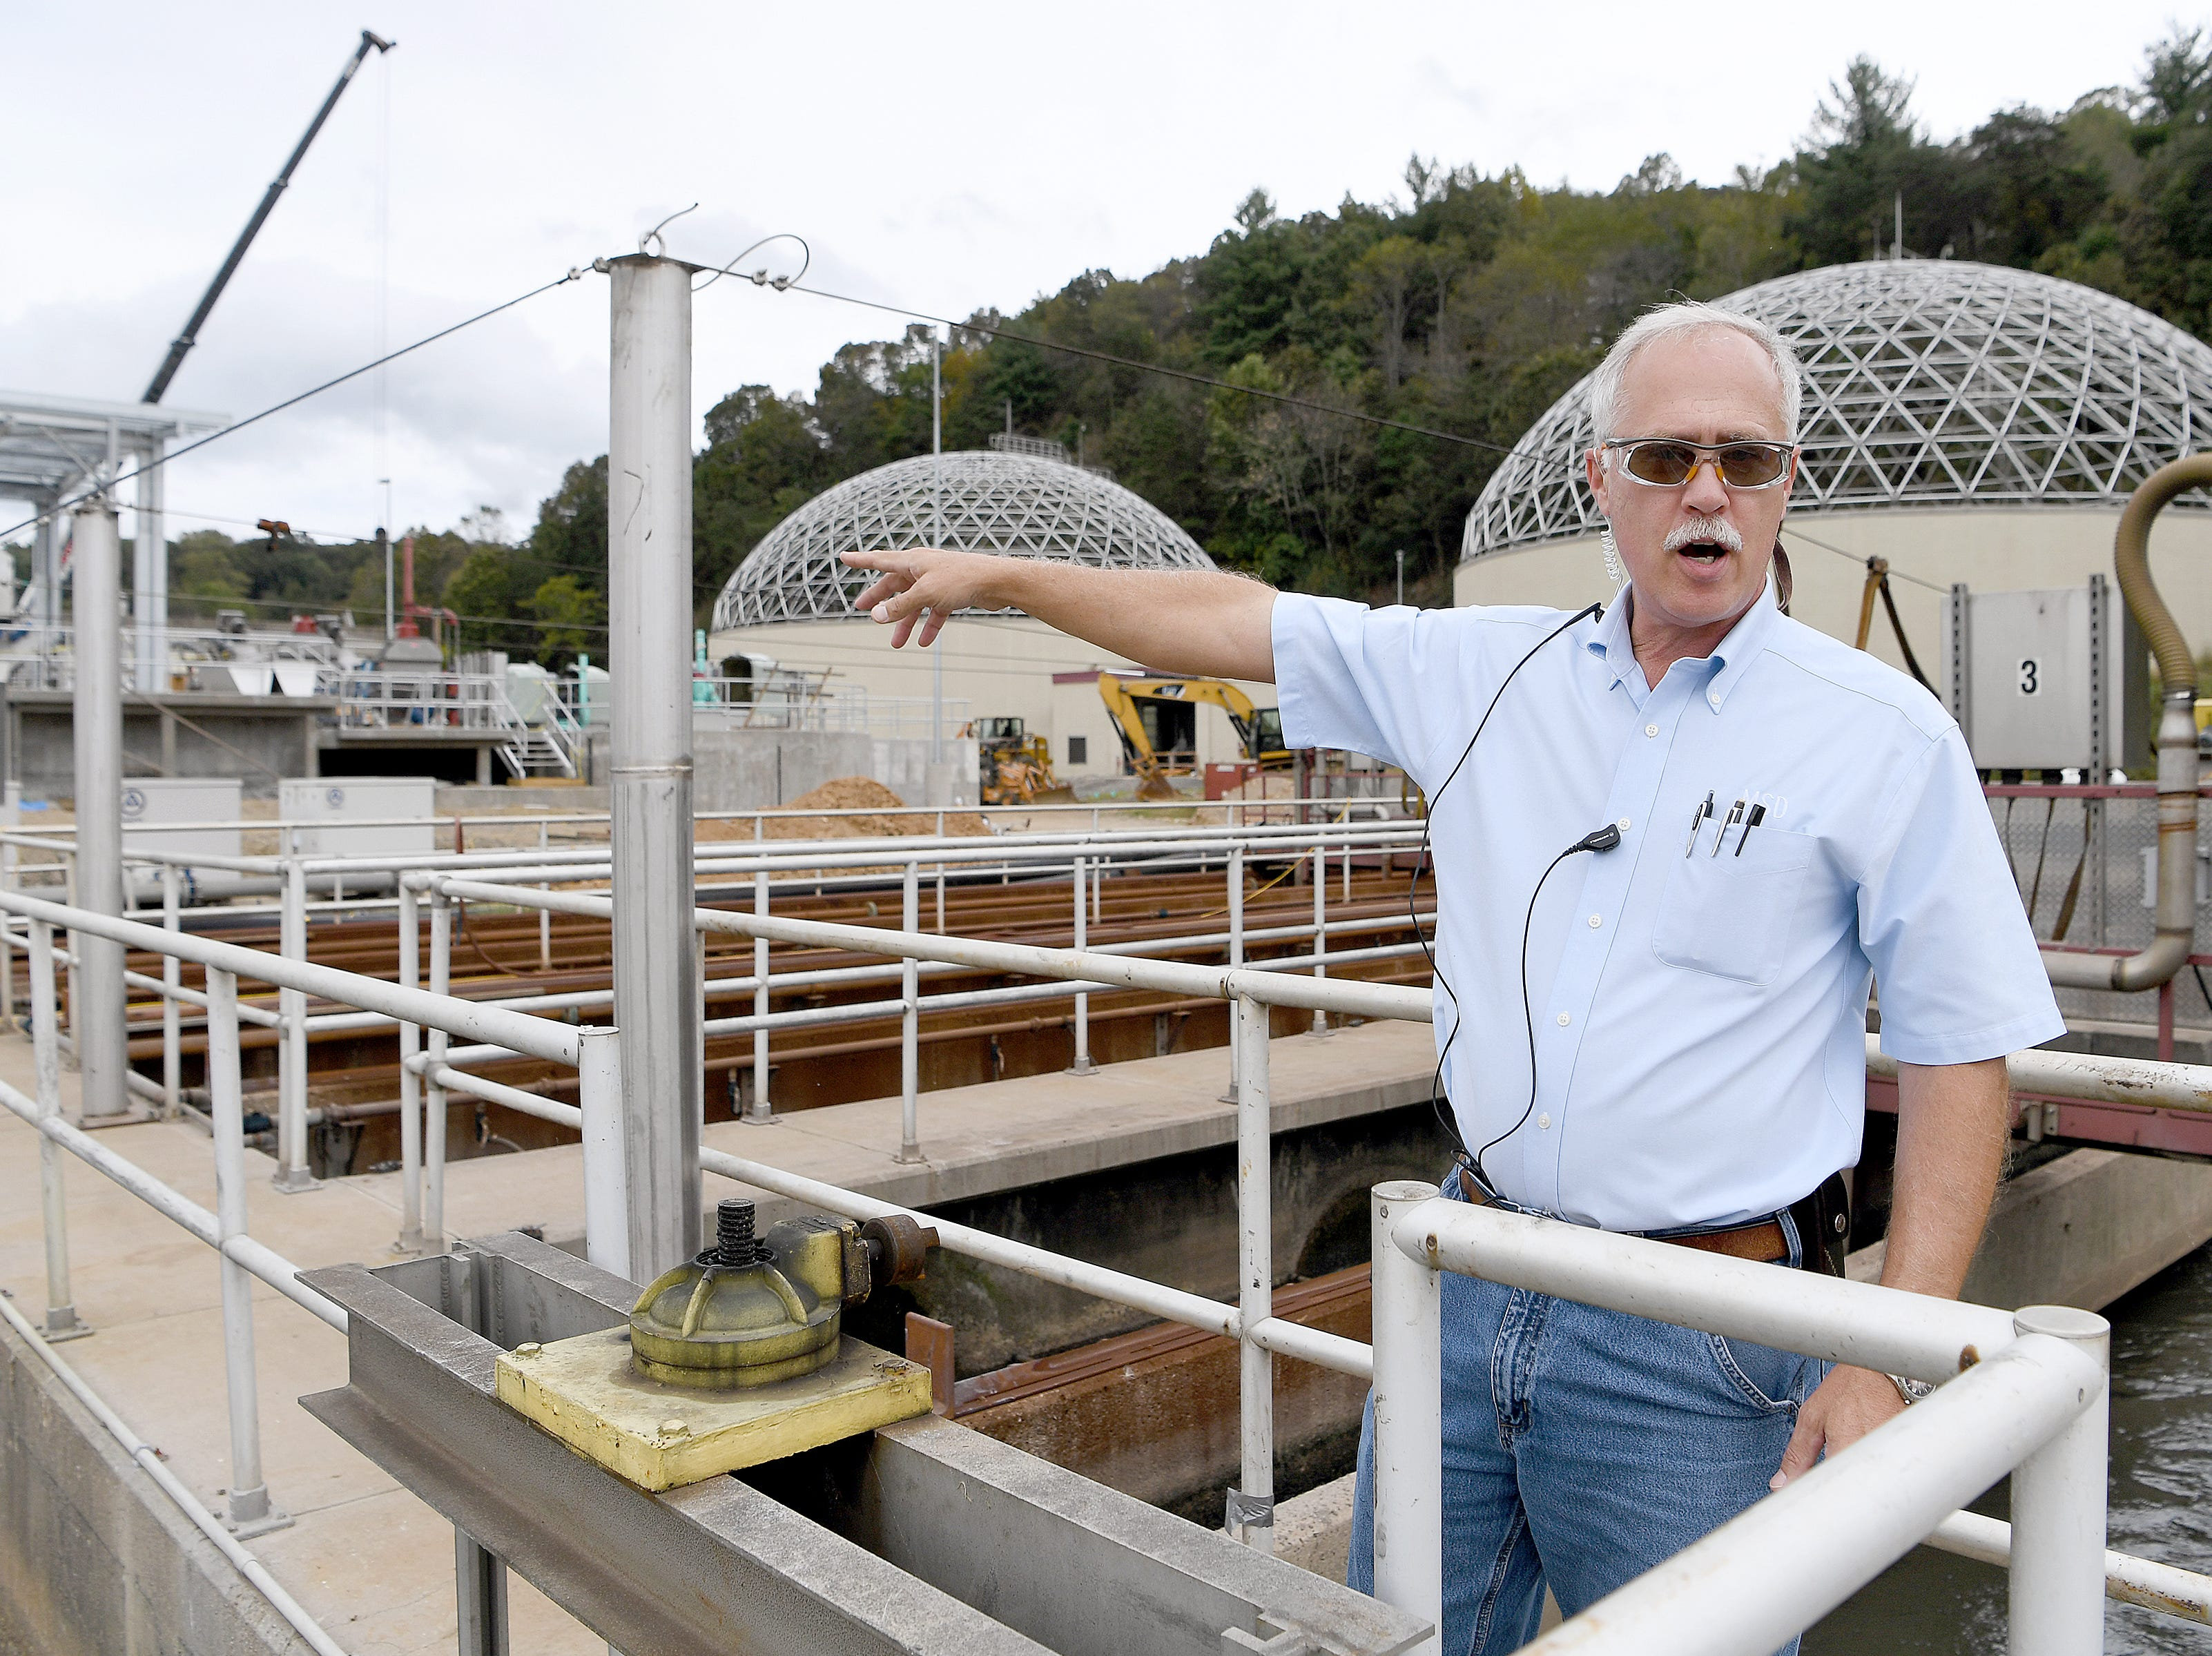 Roger Edwards, Wastewater Reclamation Facility Operations Manager, gives a tour of the facility on Oct. 9, 2018.